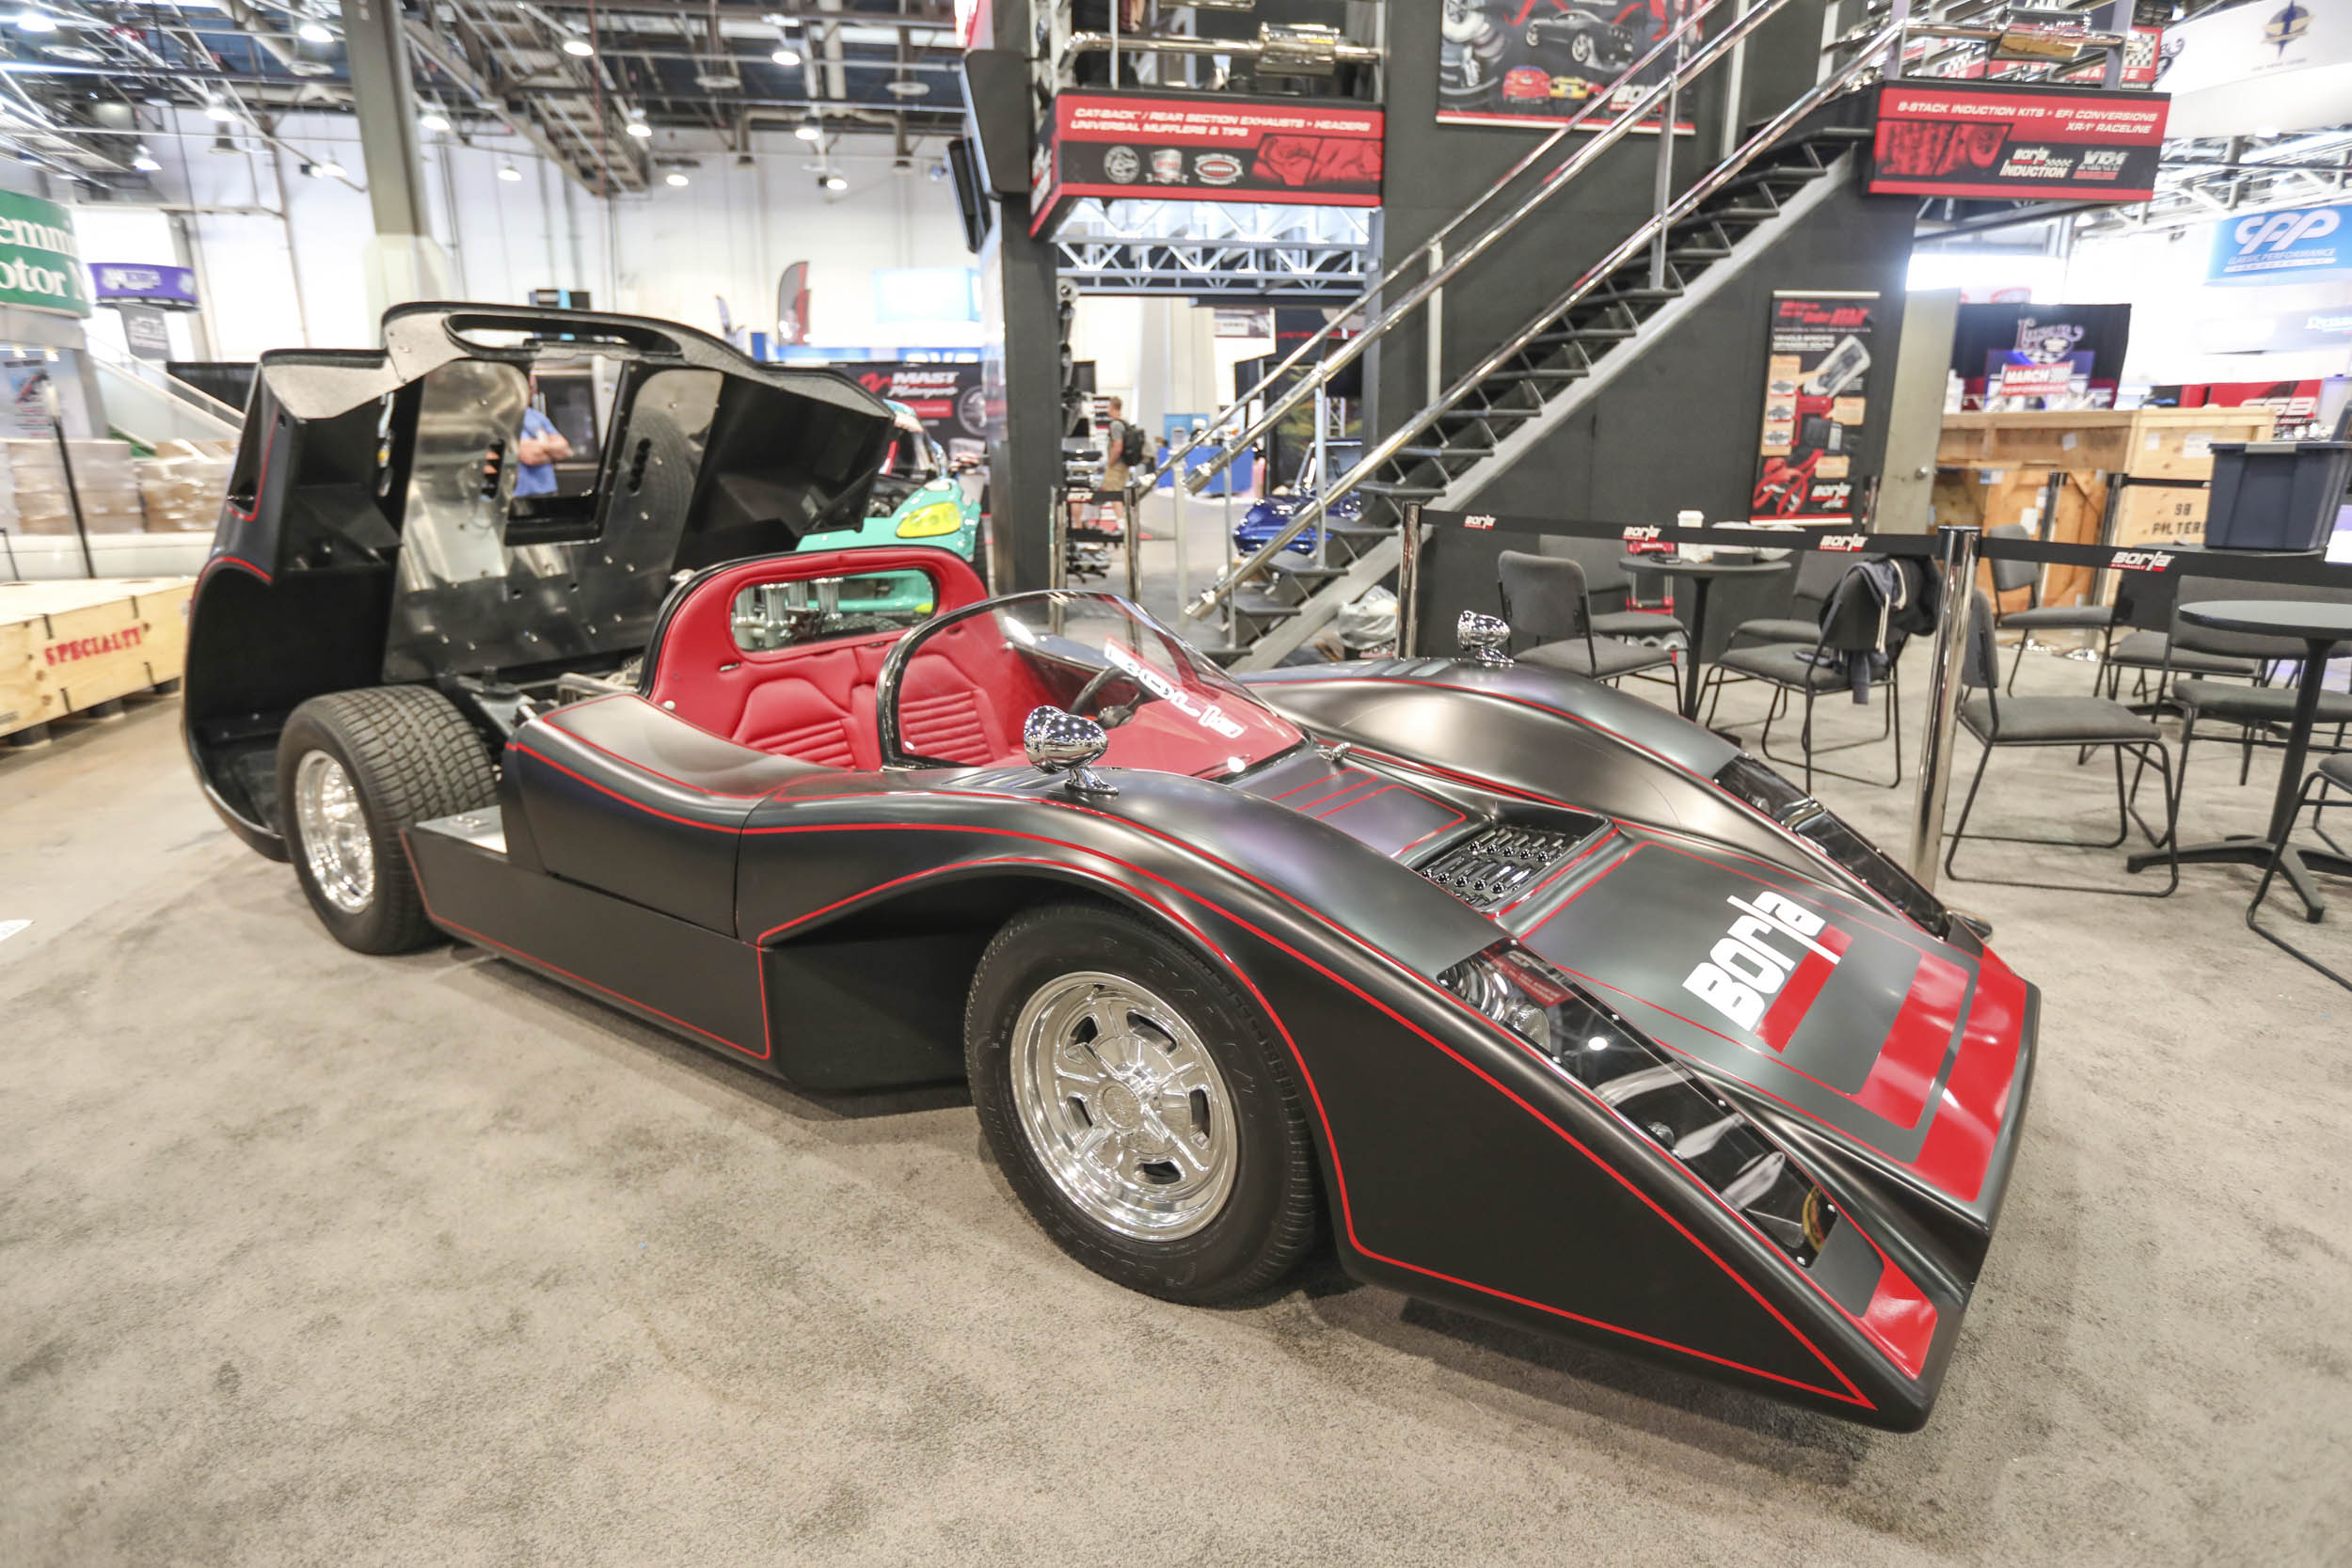 Borla displayed this flat black and red Manta Mirage built by Counts Kustoms.